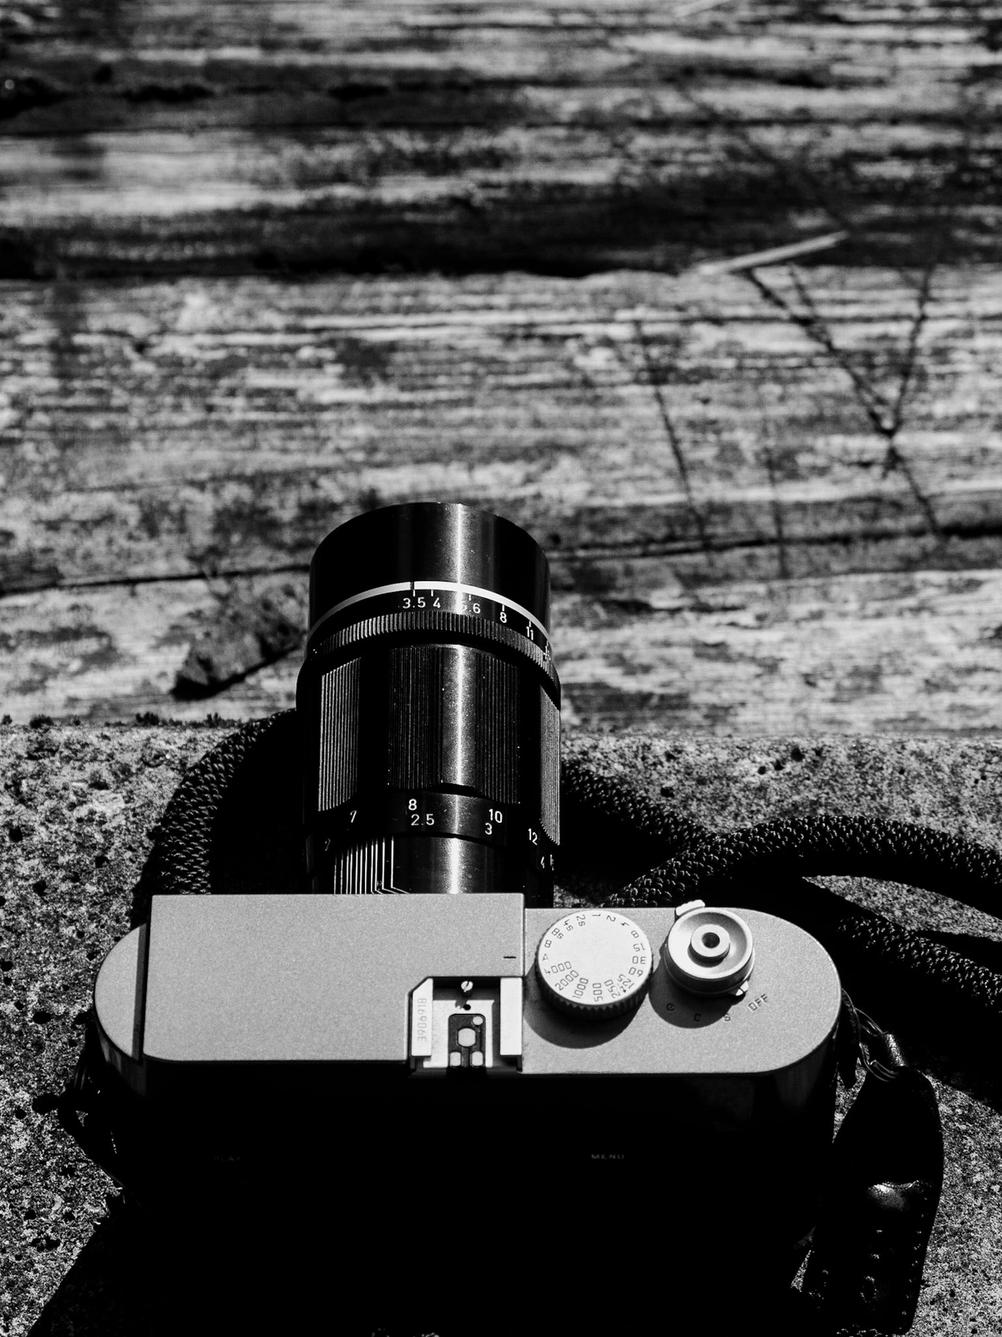 Photo of Leica M9 with a Canon 135mm f3.5 LTM lens on it.